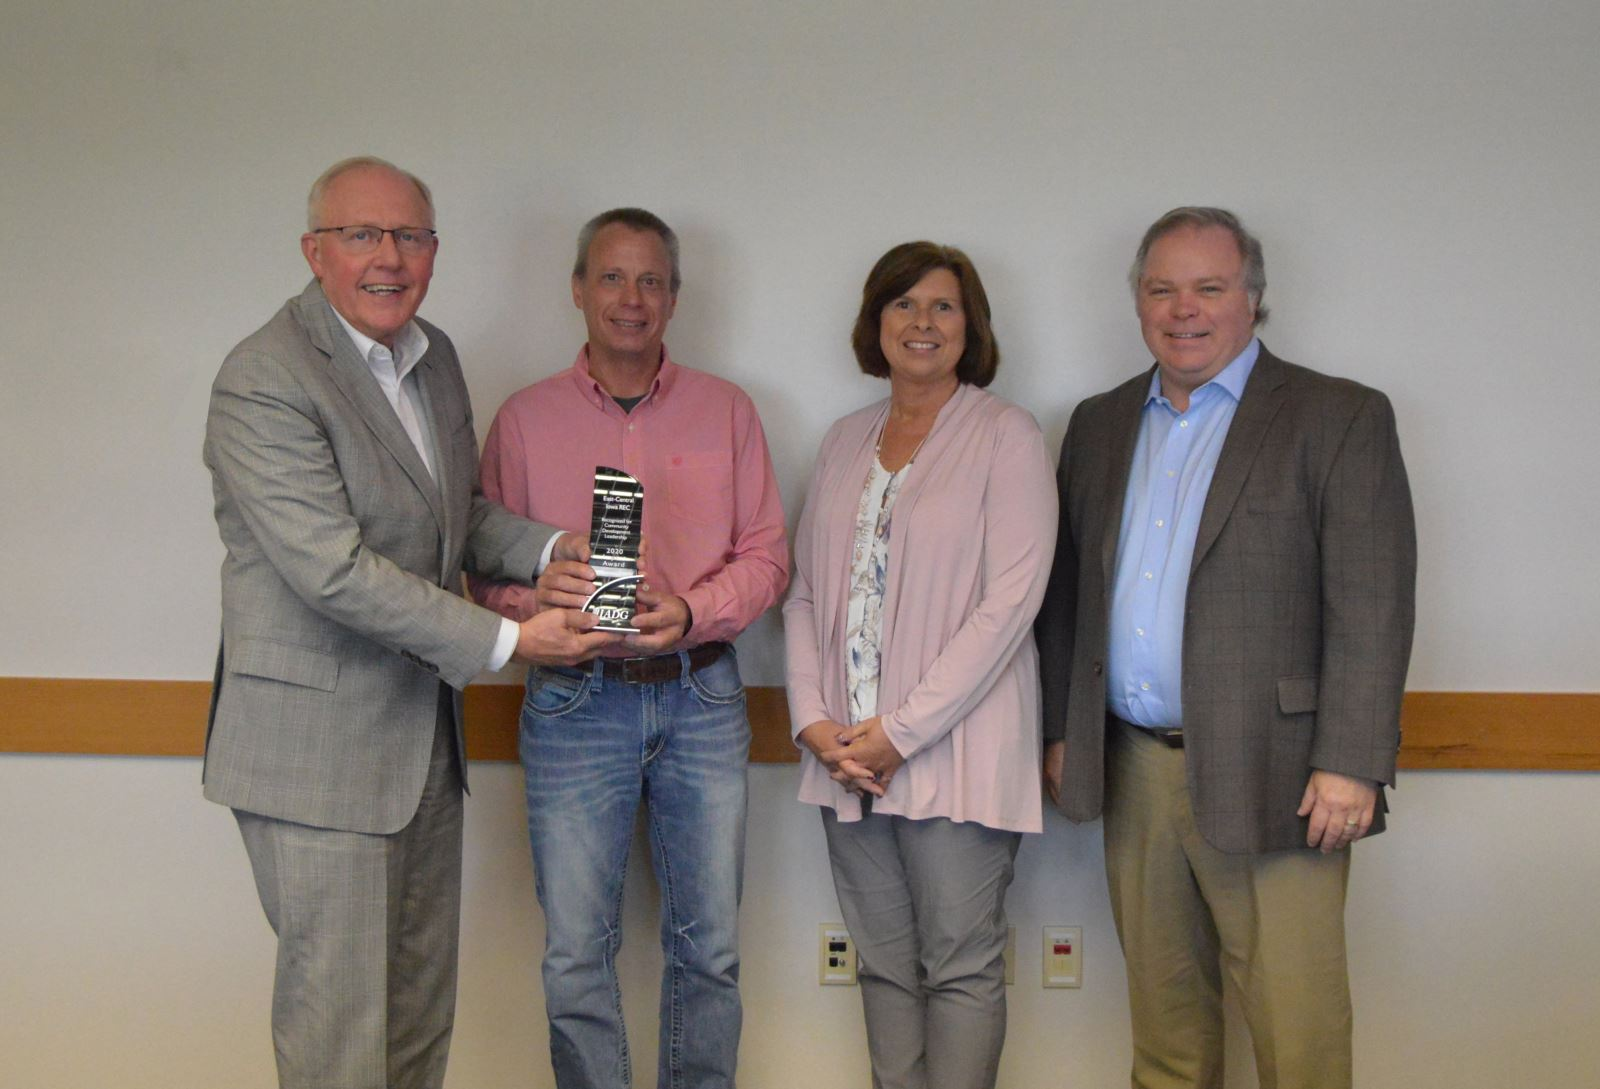 East-Central Iowa is presented with an IADG Impact Award